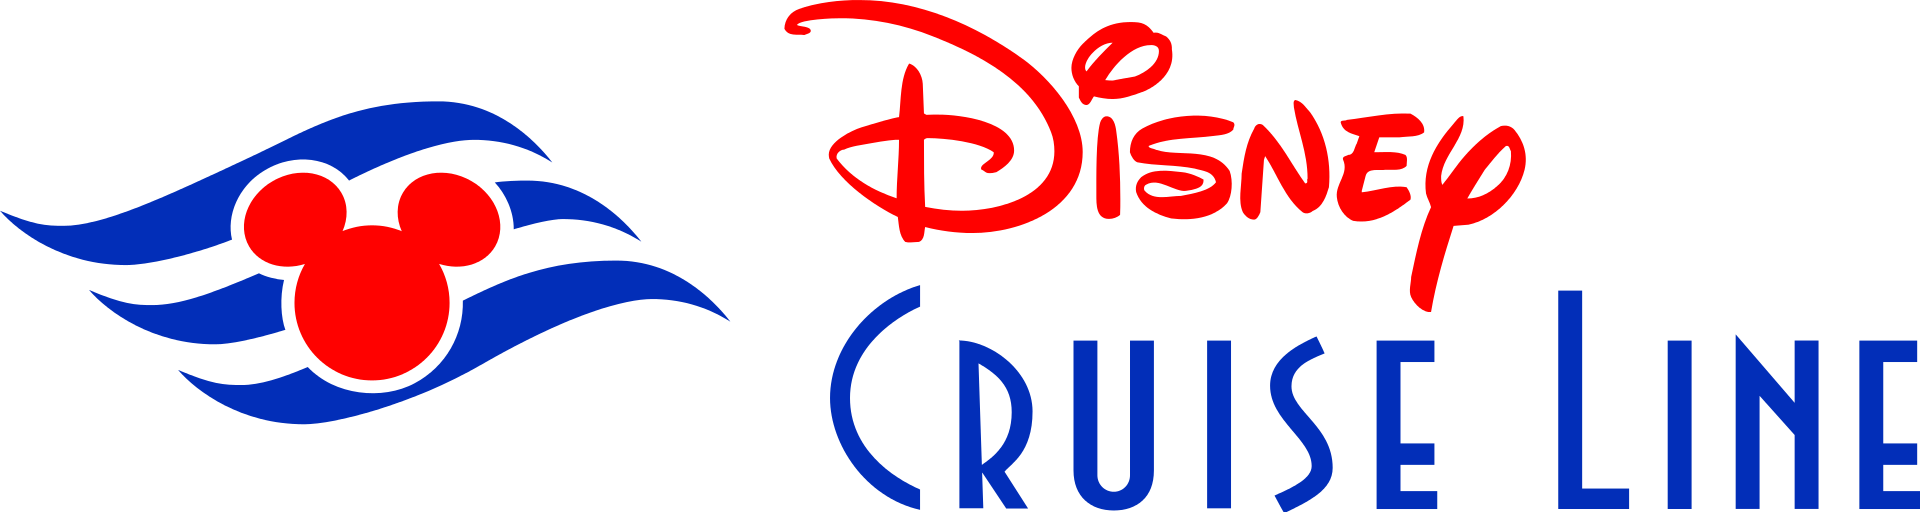 1920px-Disney_Cruise_Line_logo_svg.png